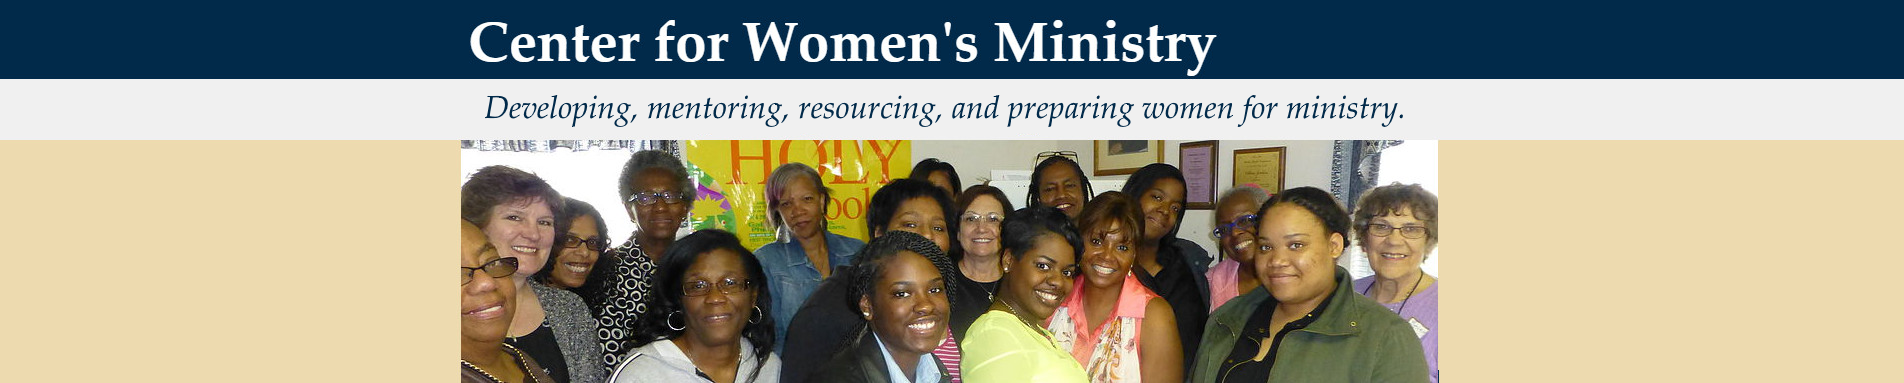 womens ministry banner.2